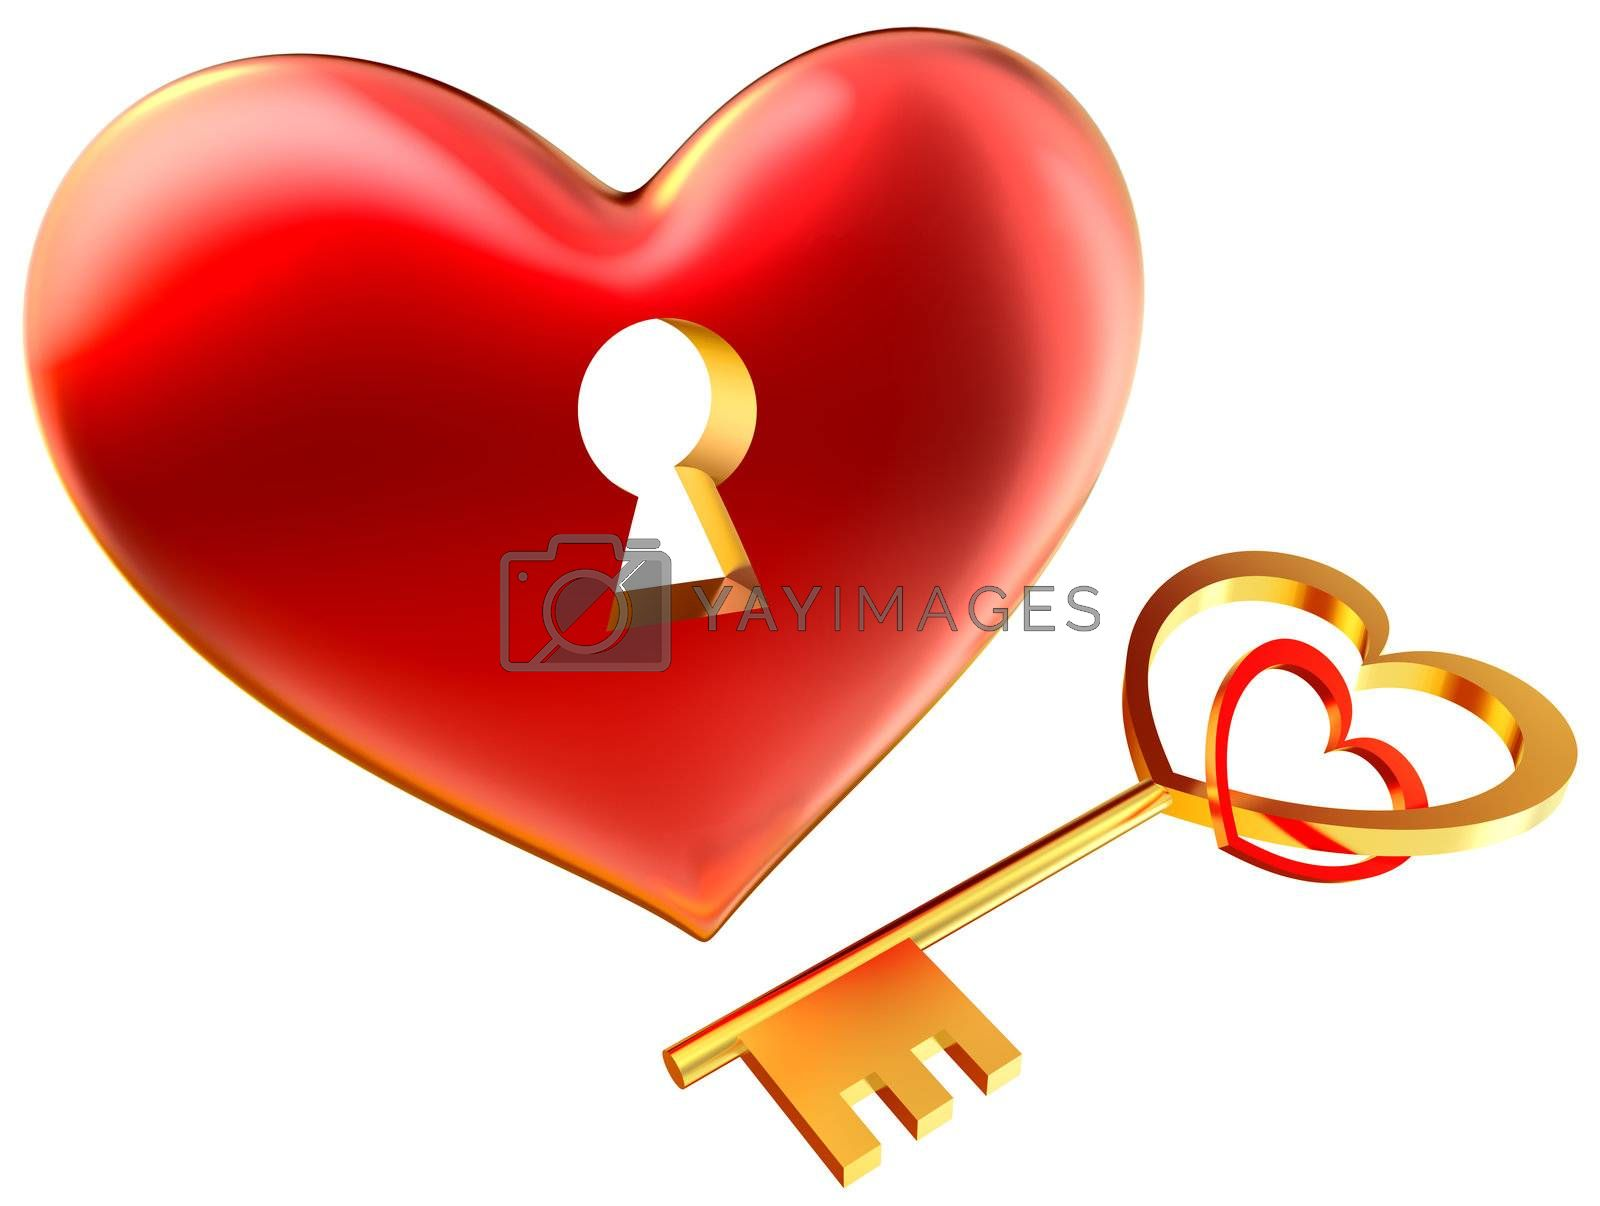 metalic red heart with keyhole as symbol of love for wedding and Valentine's Day design